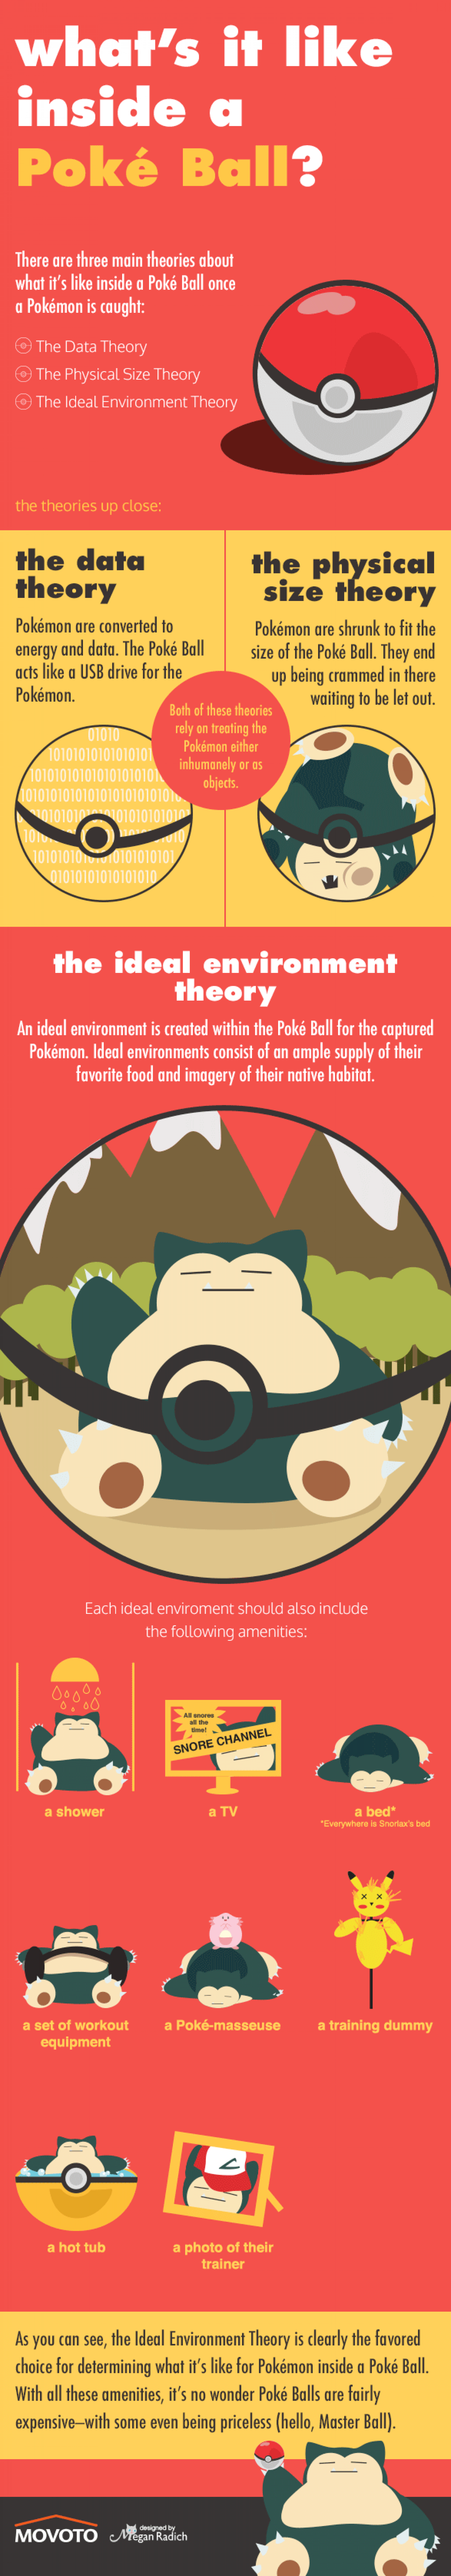 Inside a Poké Ball is Awesome Infographic